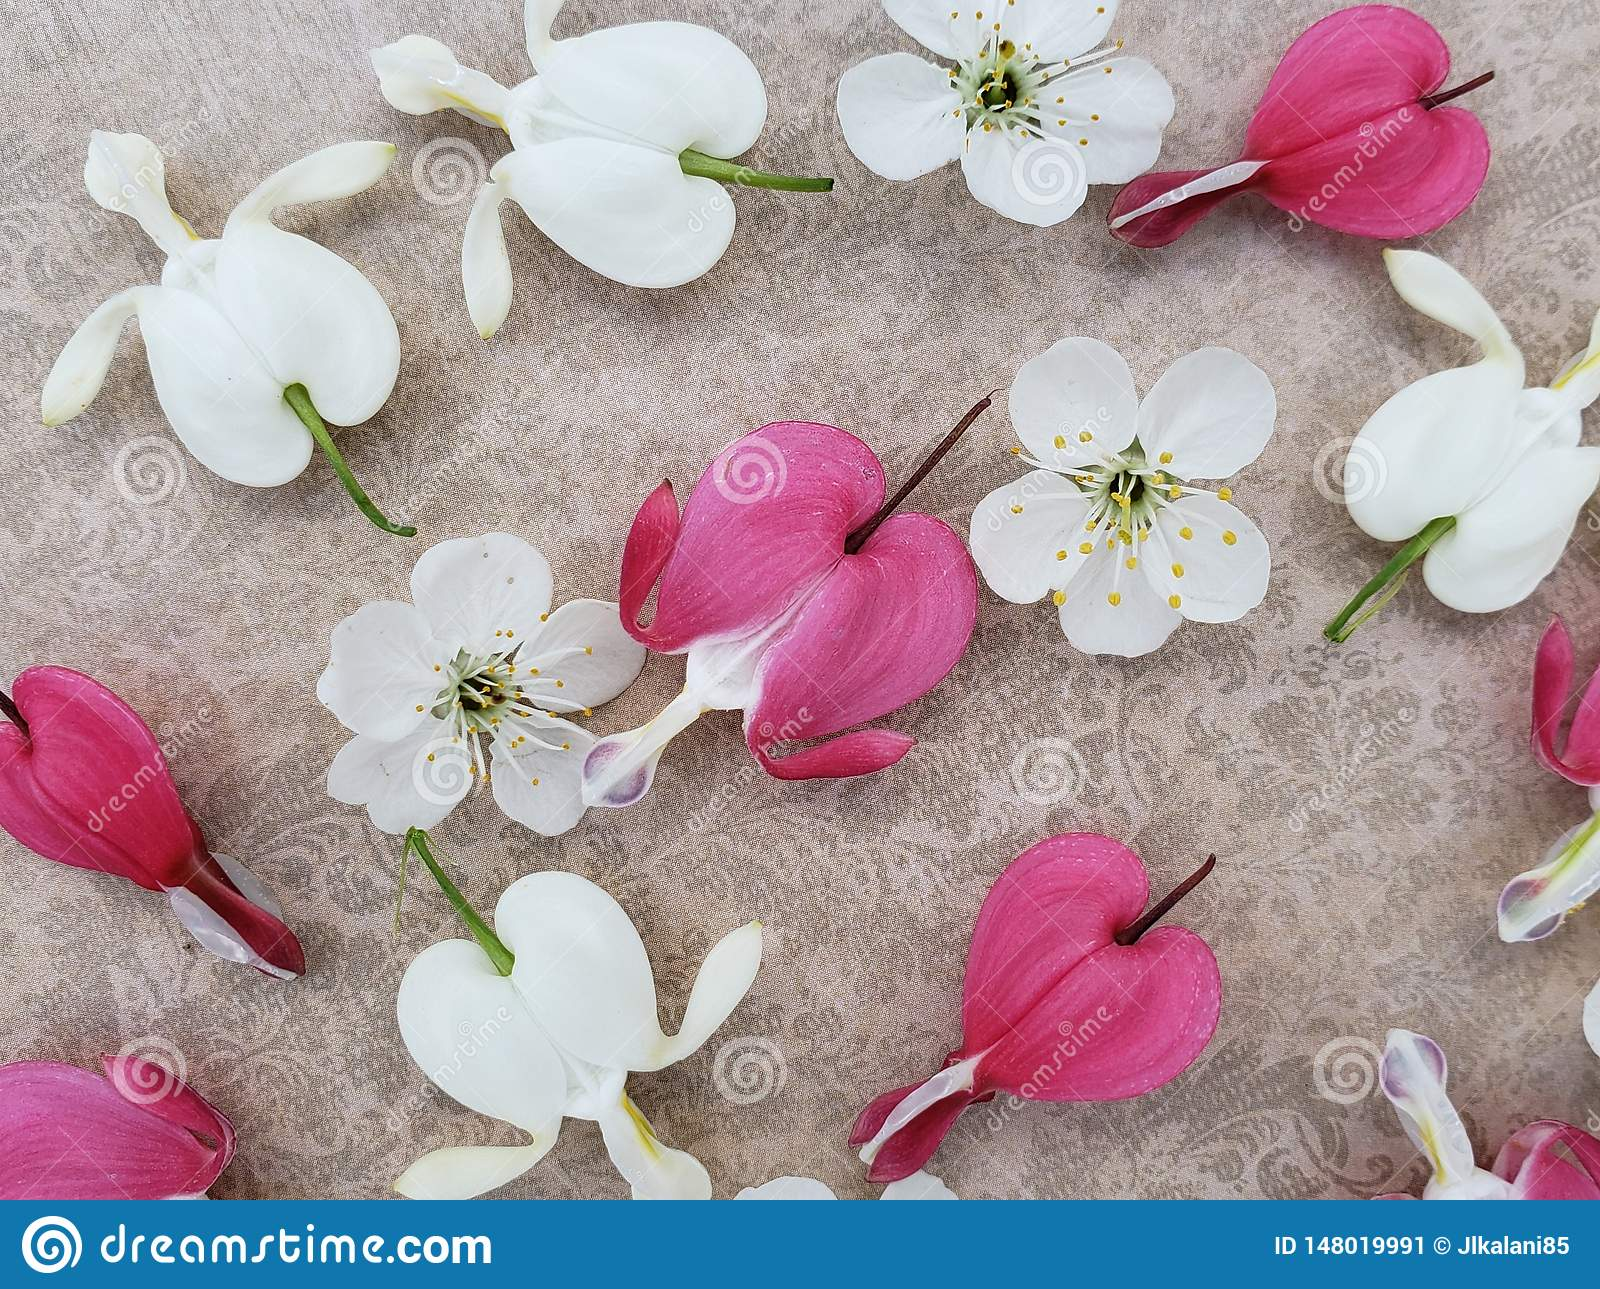 Pink and white bleeding heart flowers with cherry blossoms scattered on romantic background.